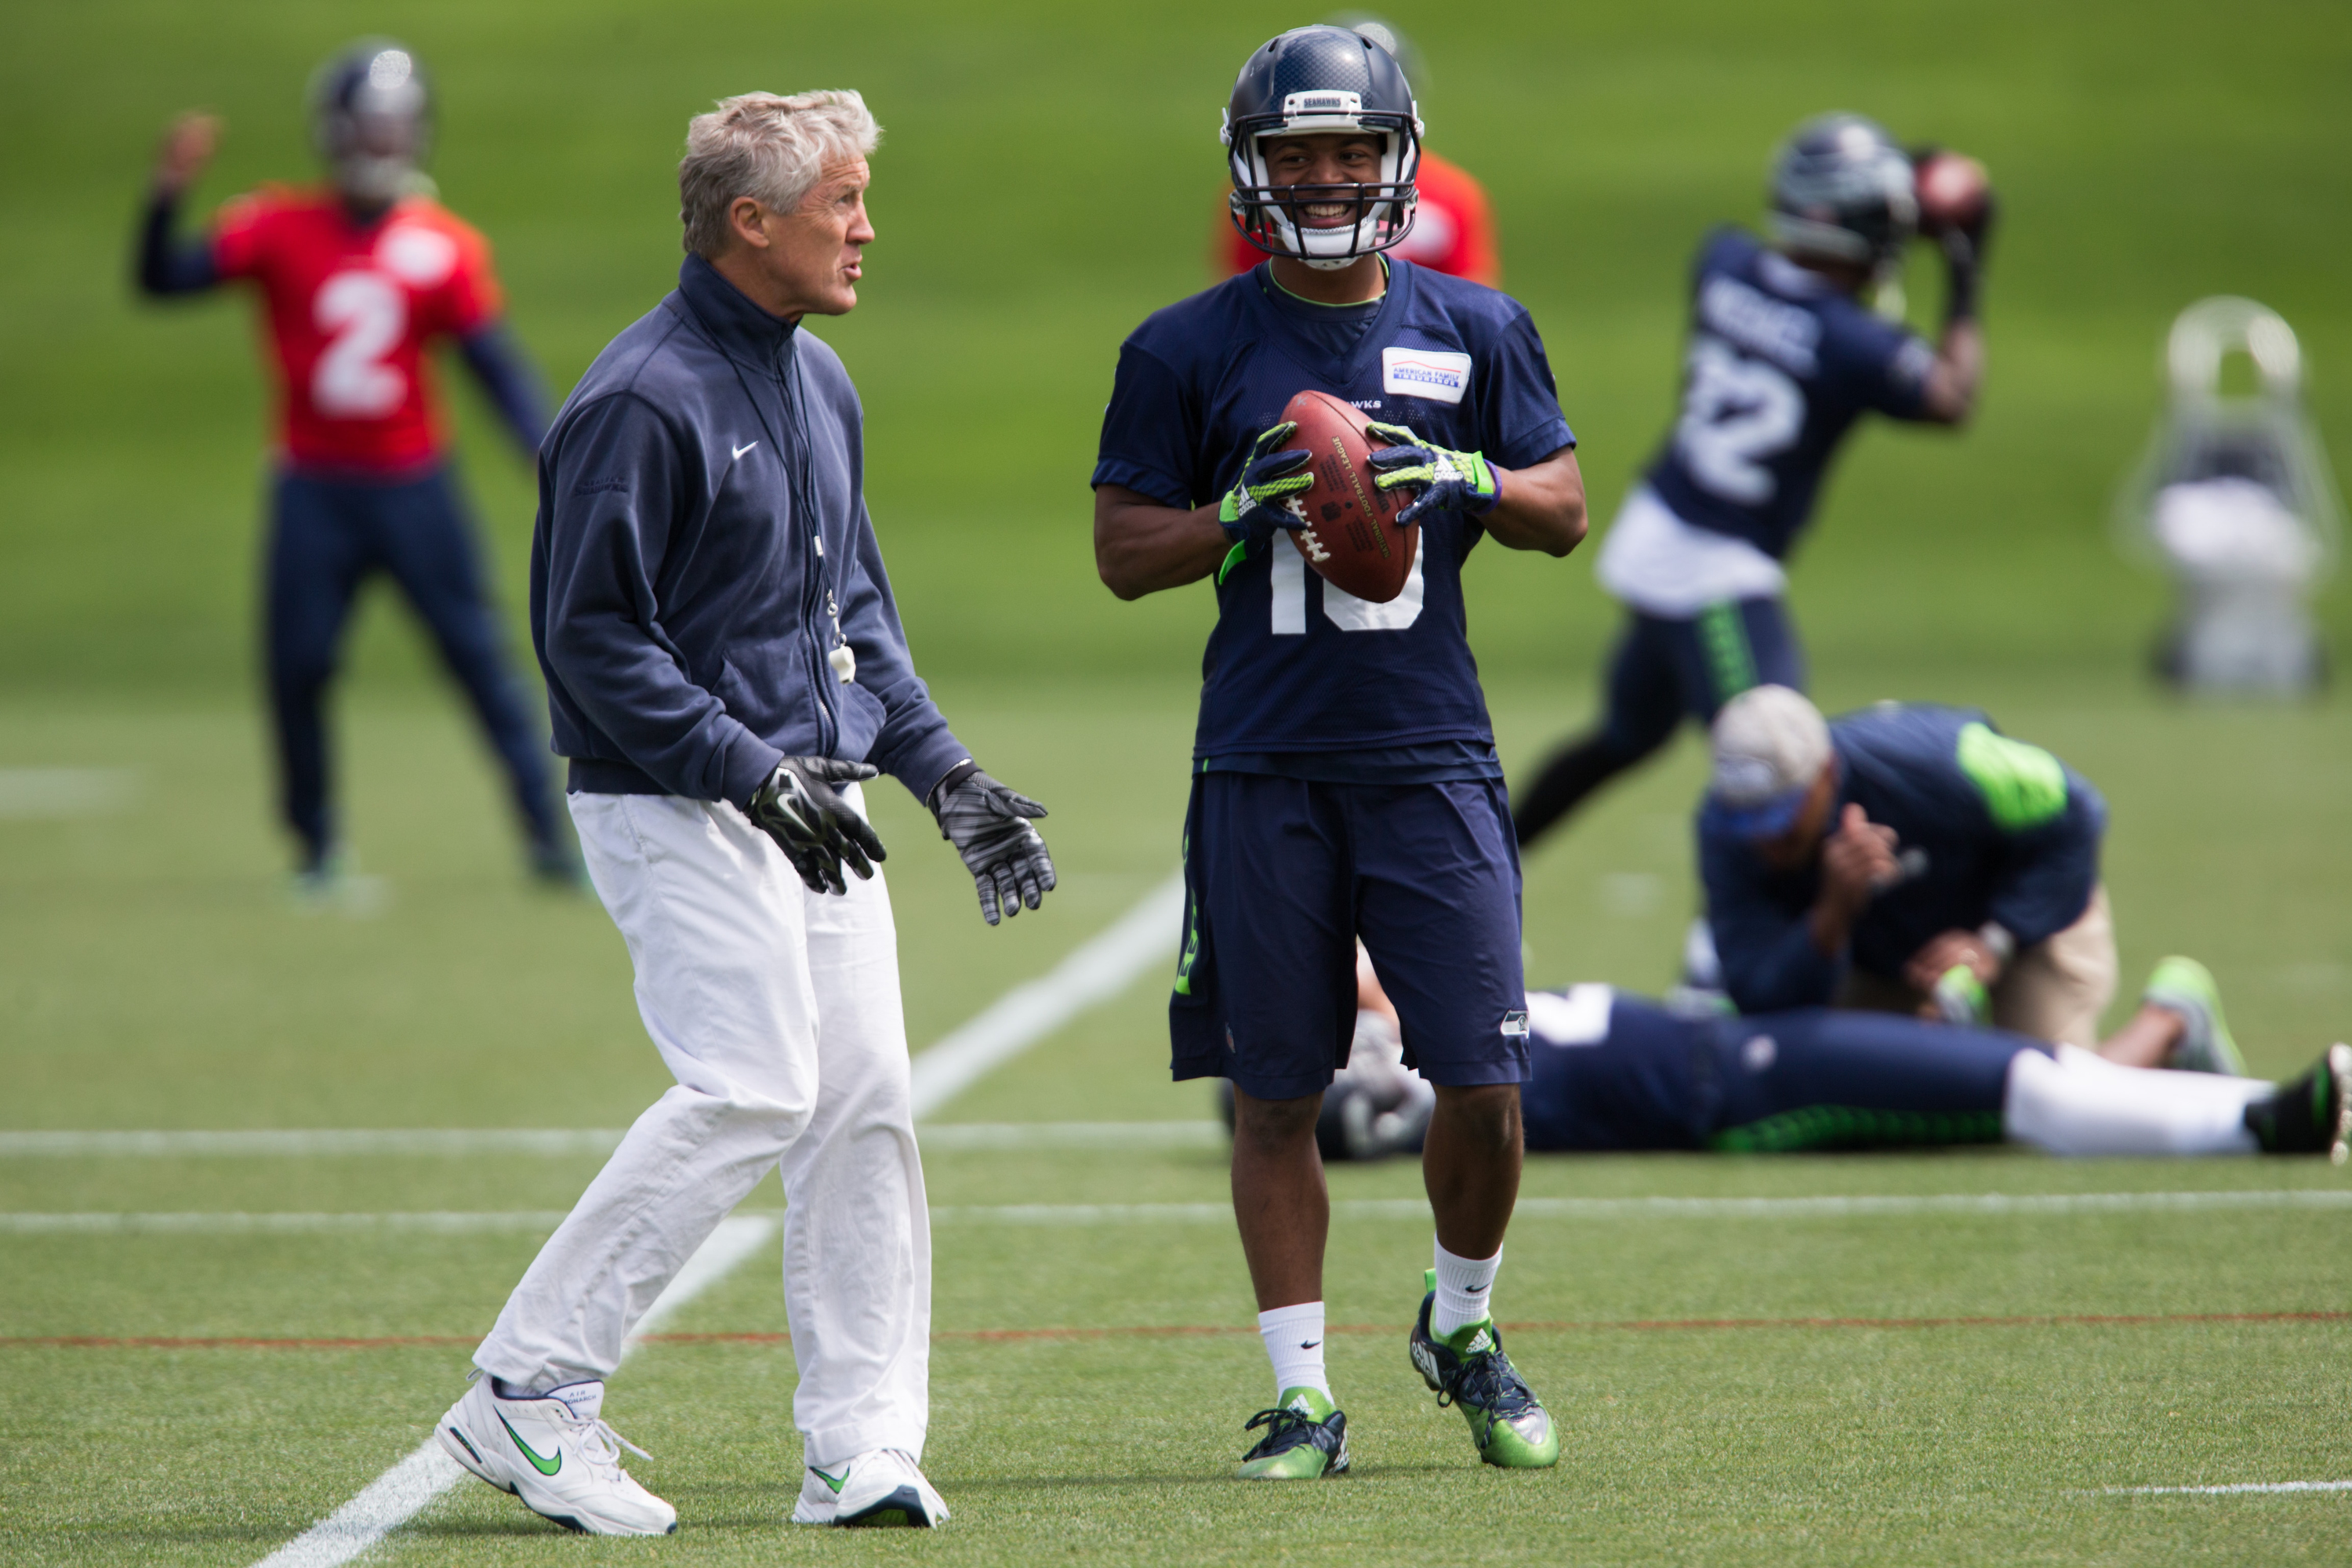 Seahawks head coach Pete Carroll meets with wide receiver Tyler Lockett during NFL football practice, Tuesday, June 14, 2016 at Virginia Mason Athletic Center in Renton, Wash. (Grant Hindsley/seattlepi.com via AP) MAGS OUT; NO SALES; SEATTLE TIMES OUT; TV